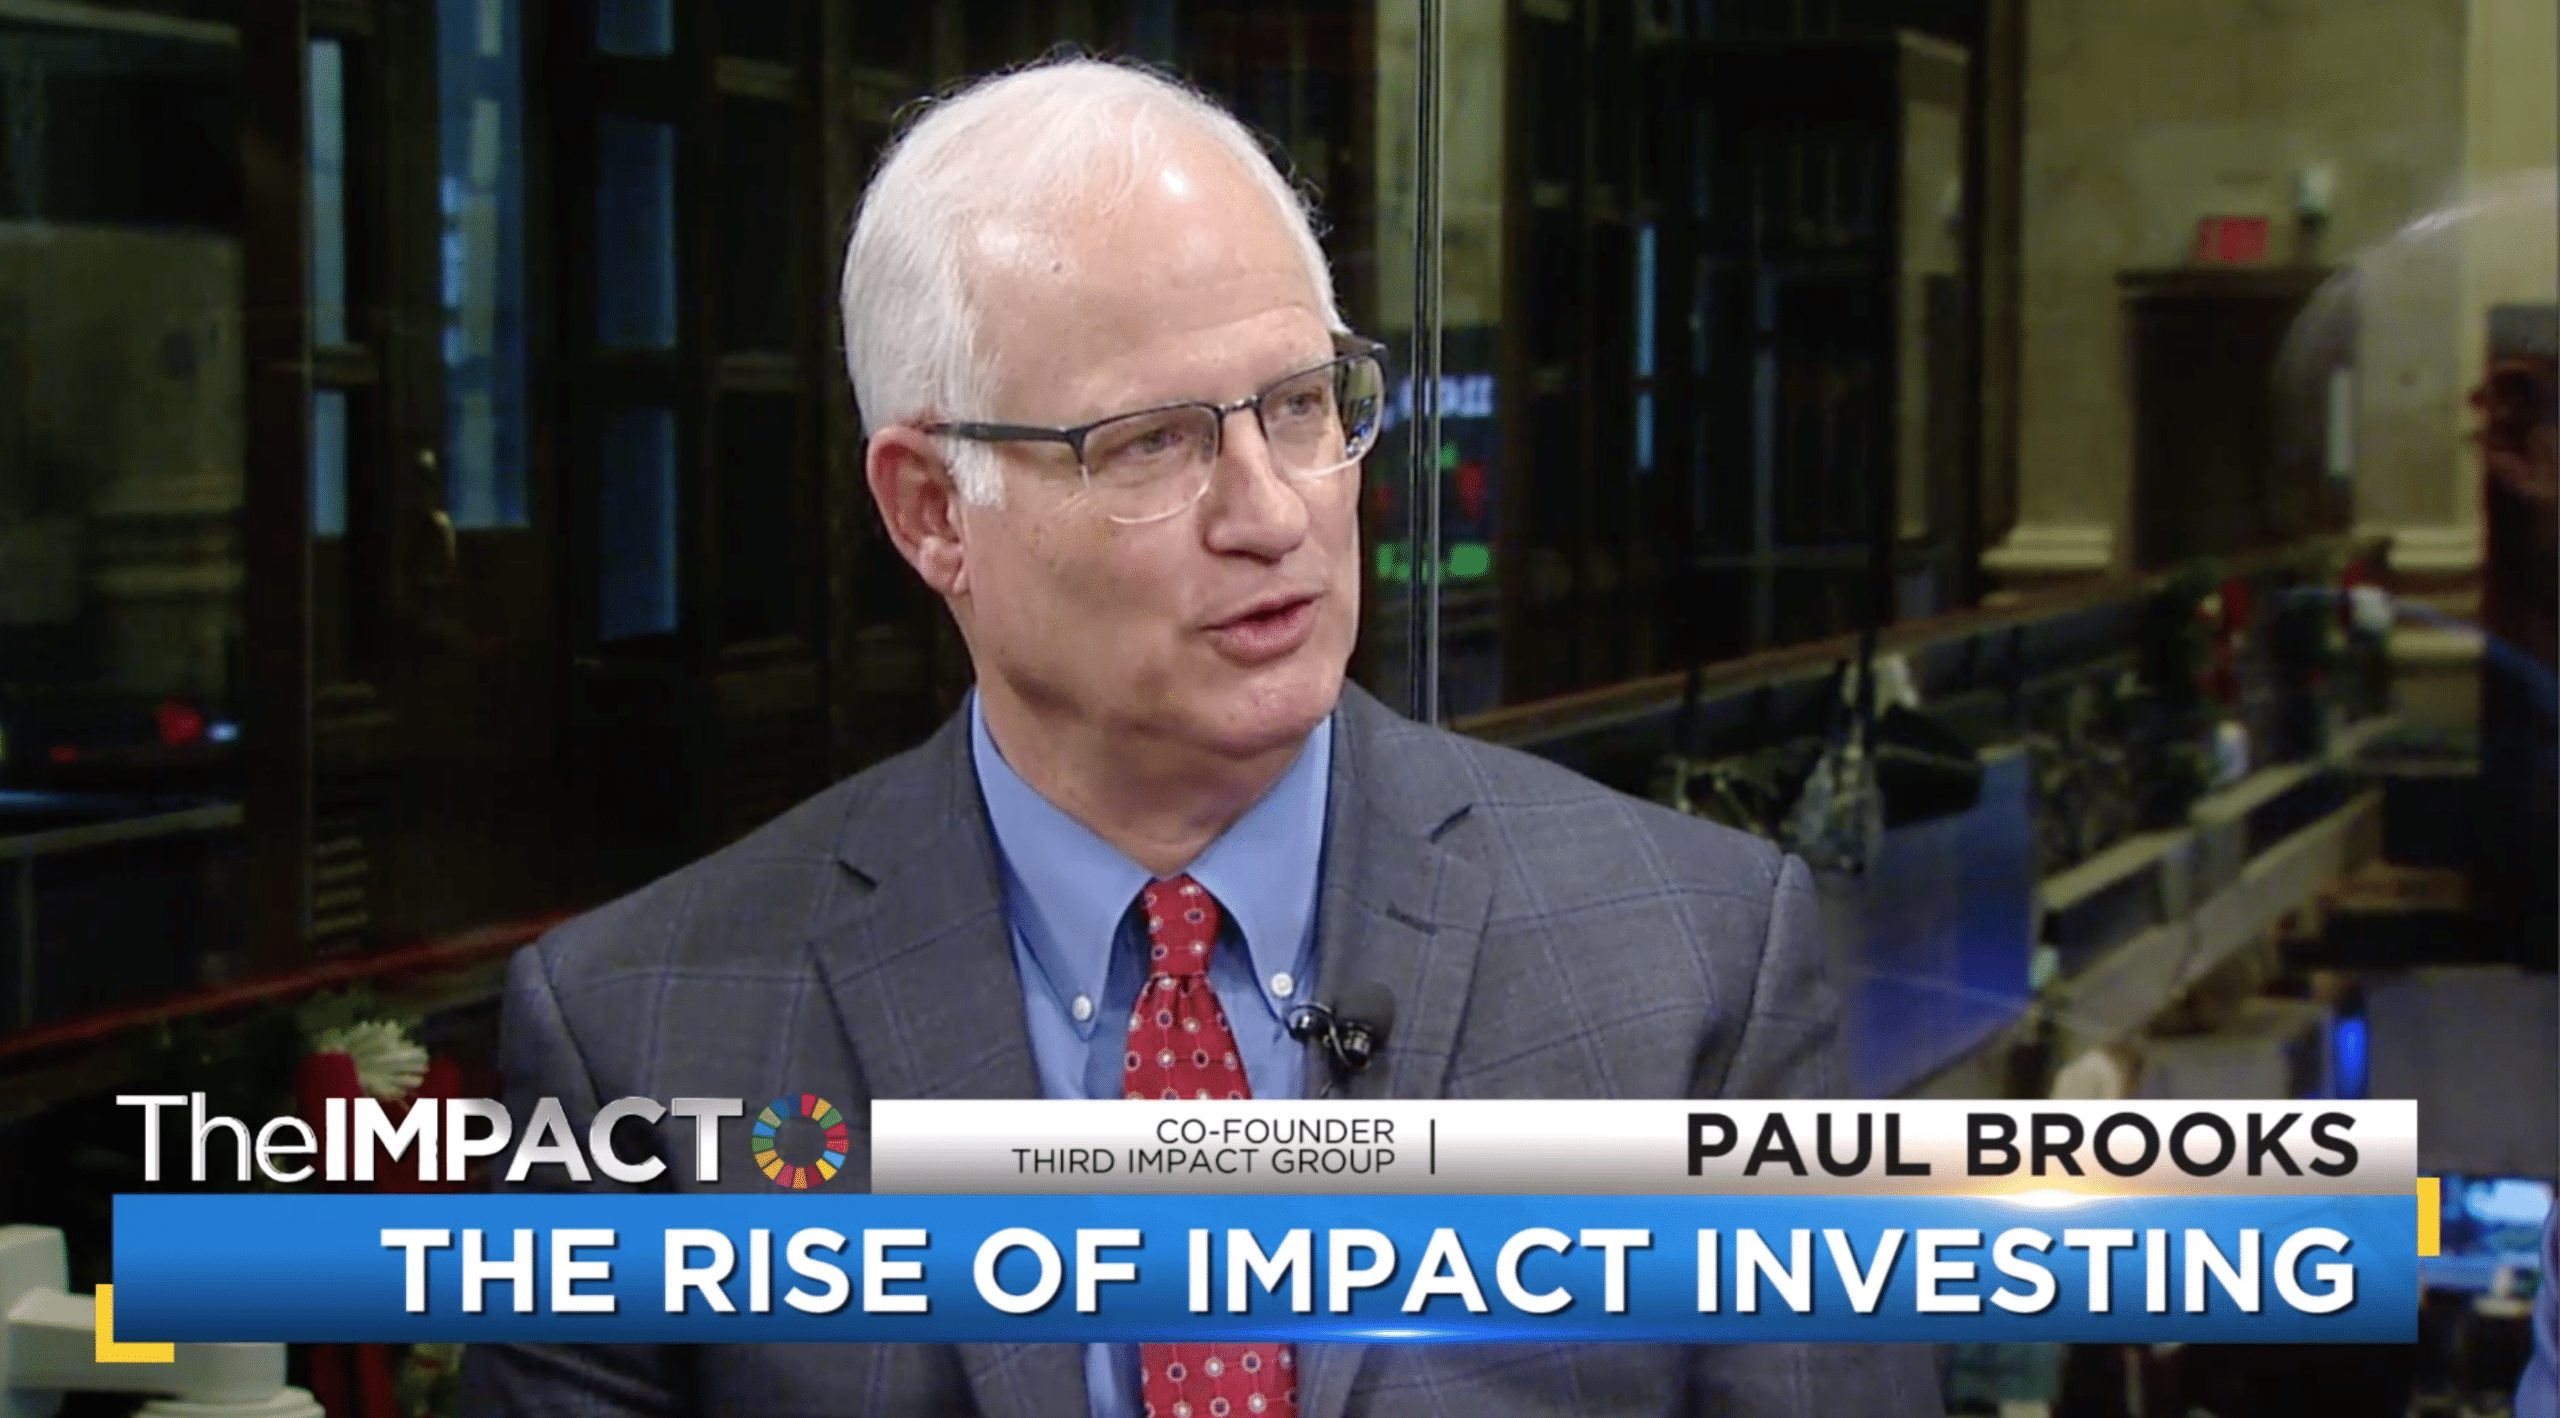 Paul Brooks, Co-founder of Third Impact Group